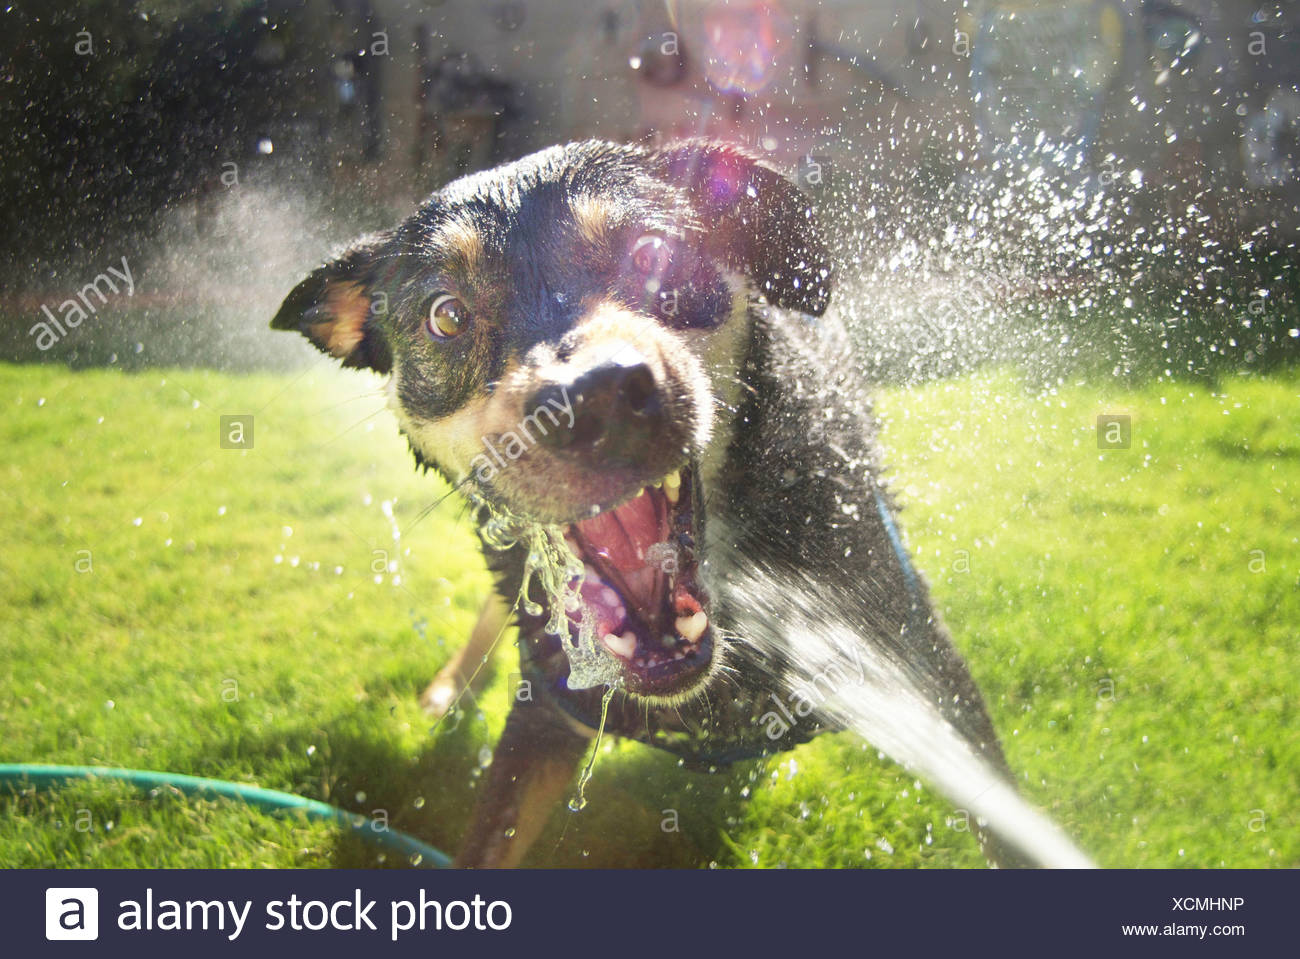 Dog attacking water hose in backyard fun vicious an wide eyed bearing teeth with spray flying everywhere albuquerque new mexico - Stock Image